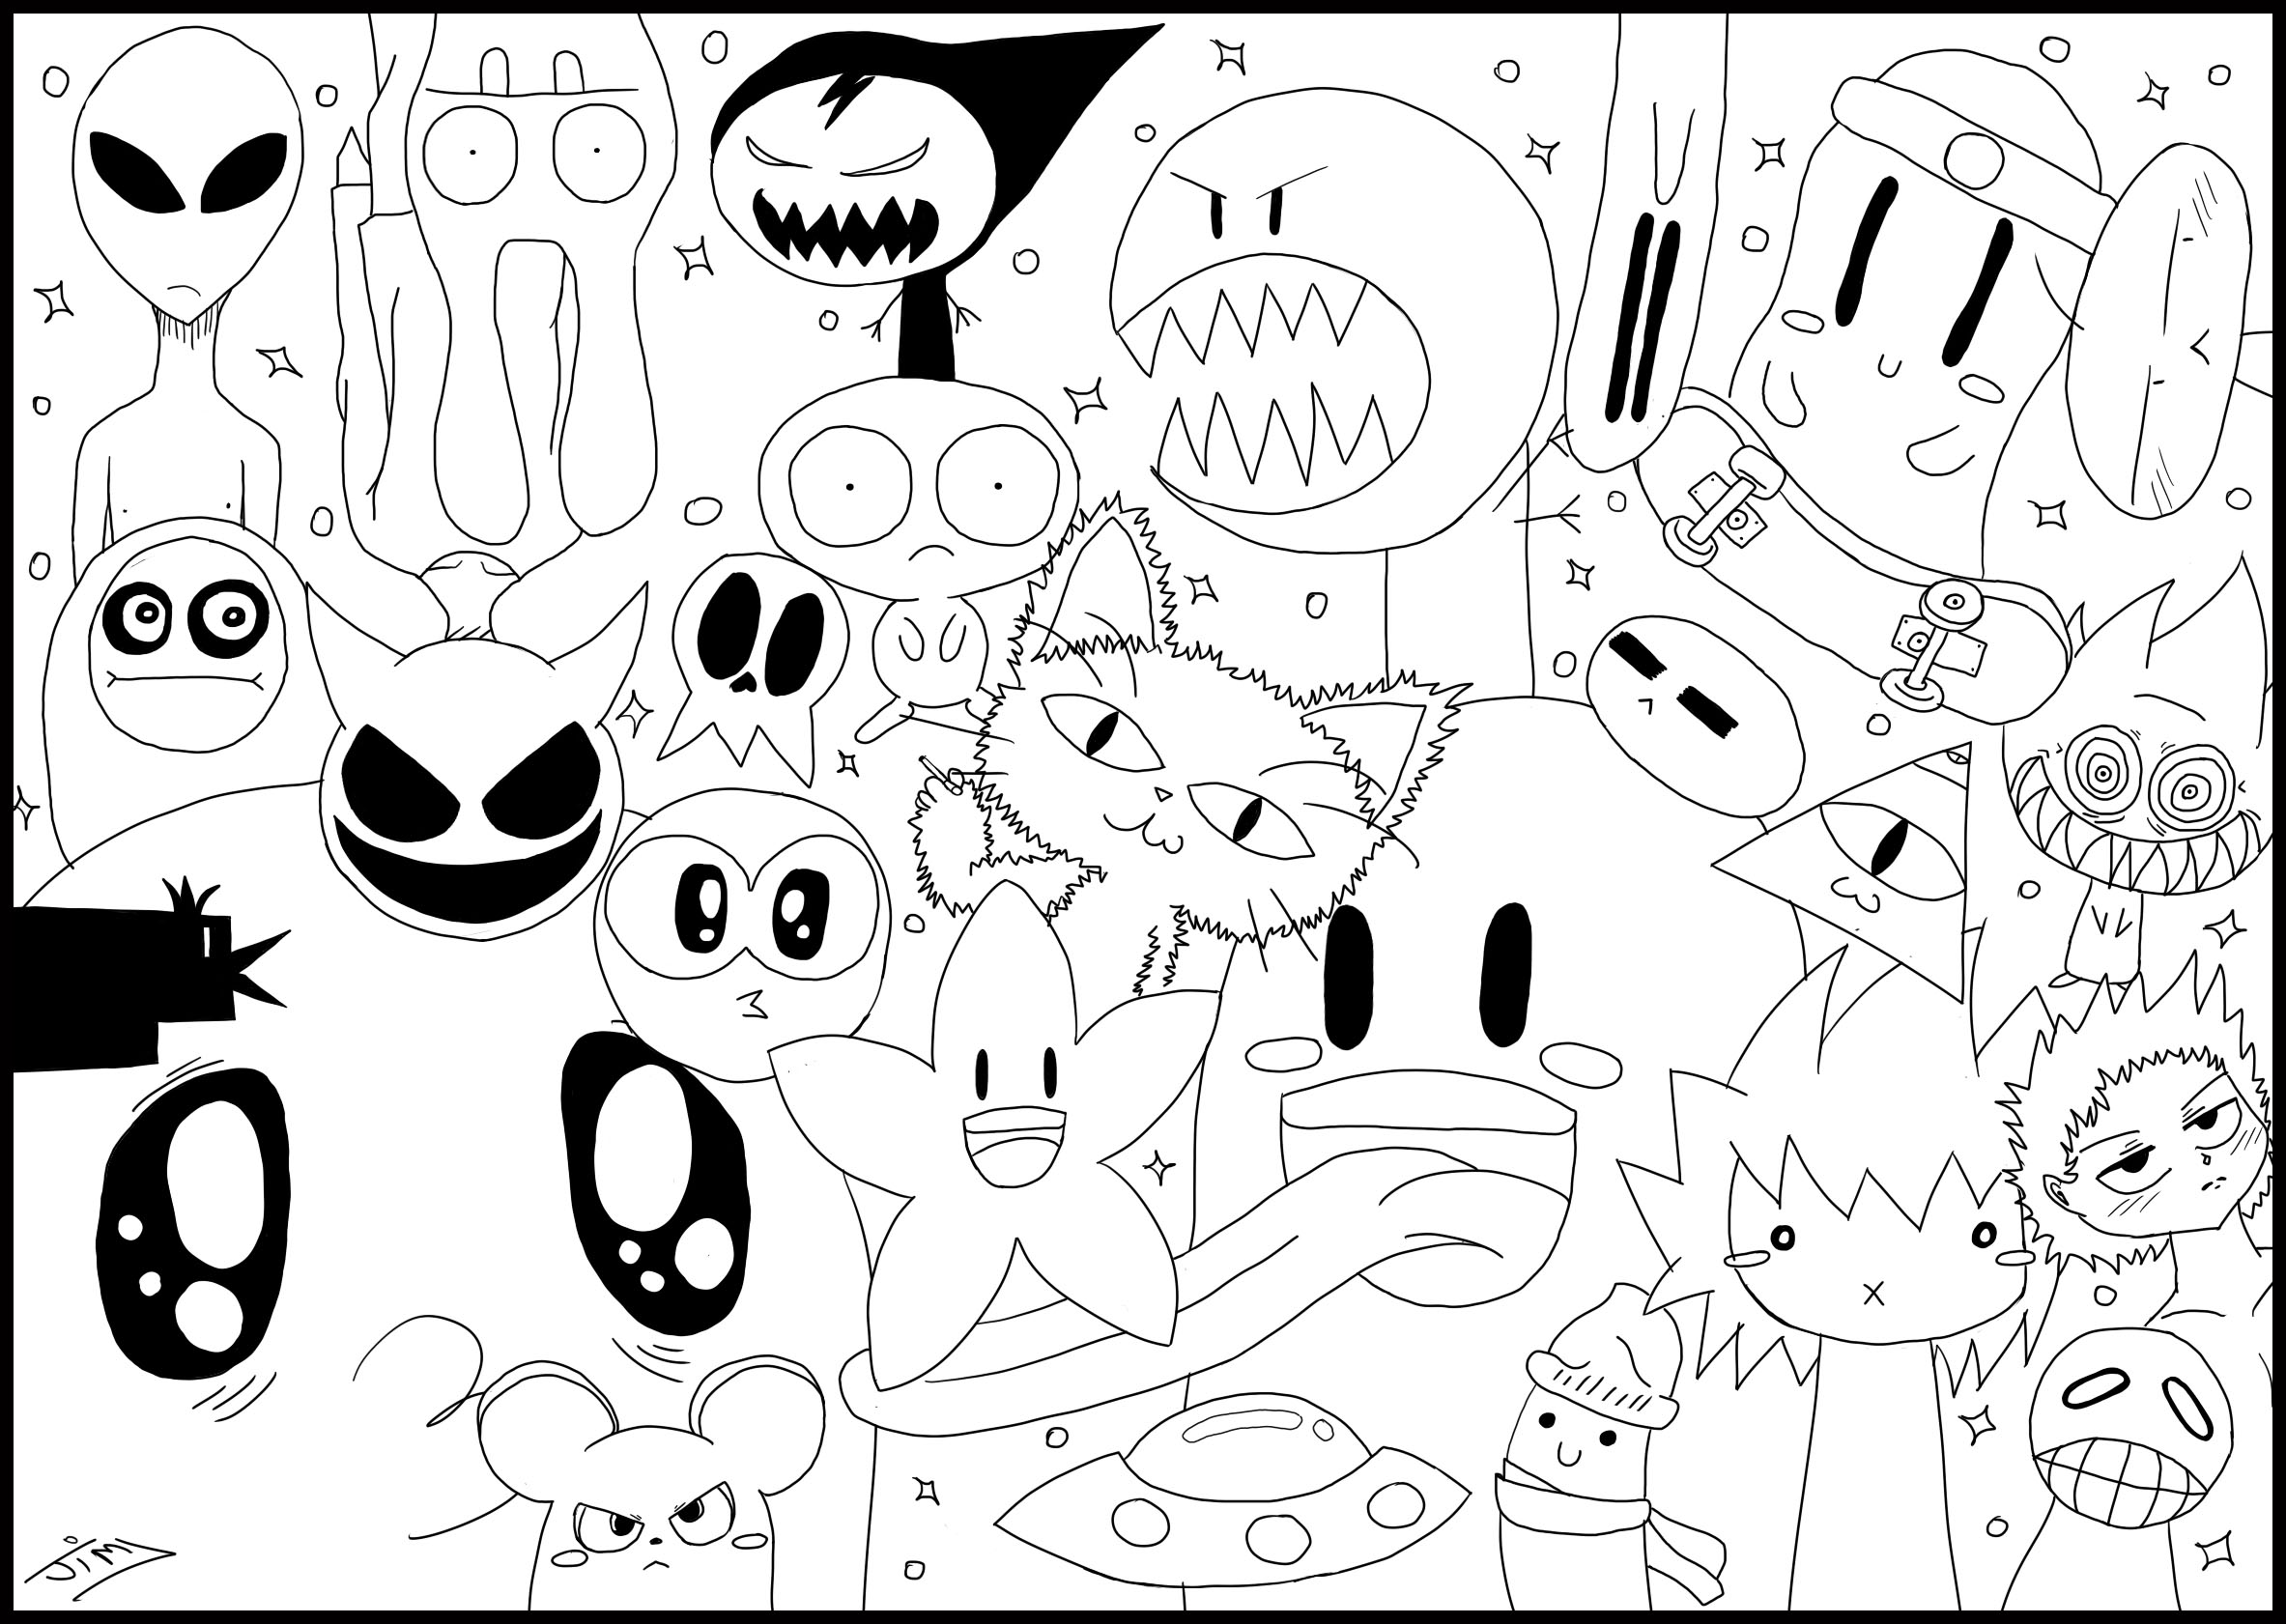 736x1015 Cute Coloring Pages For Adults 2366x1681 Doodle Monster World By Jim Doodling Art